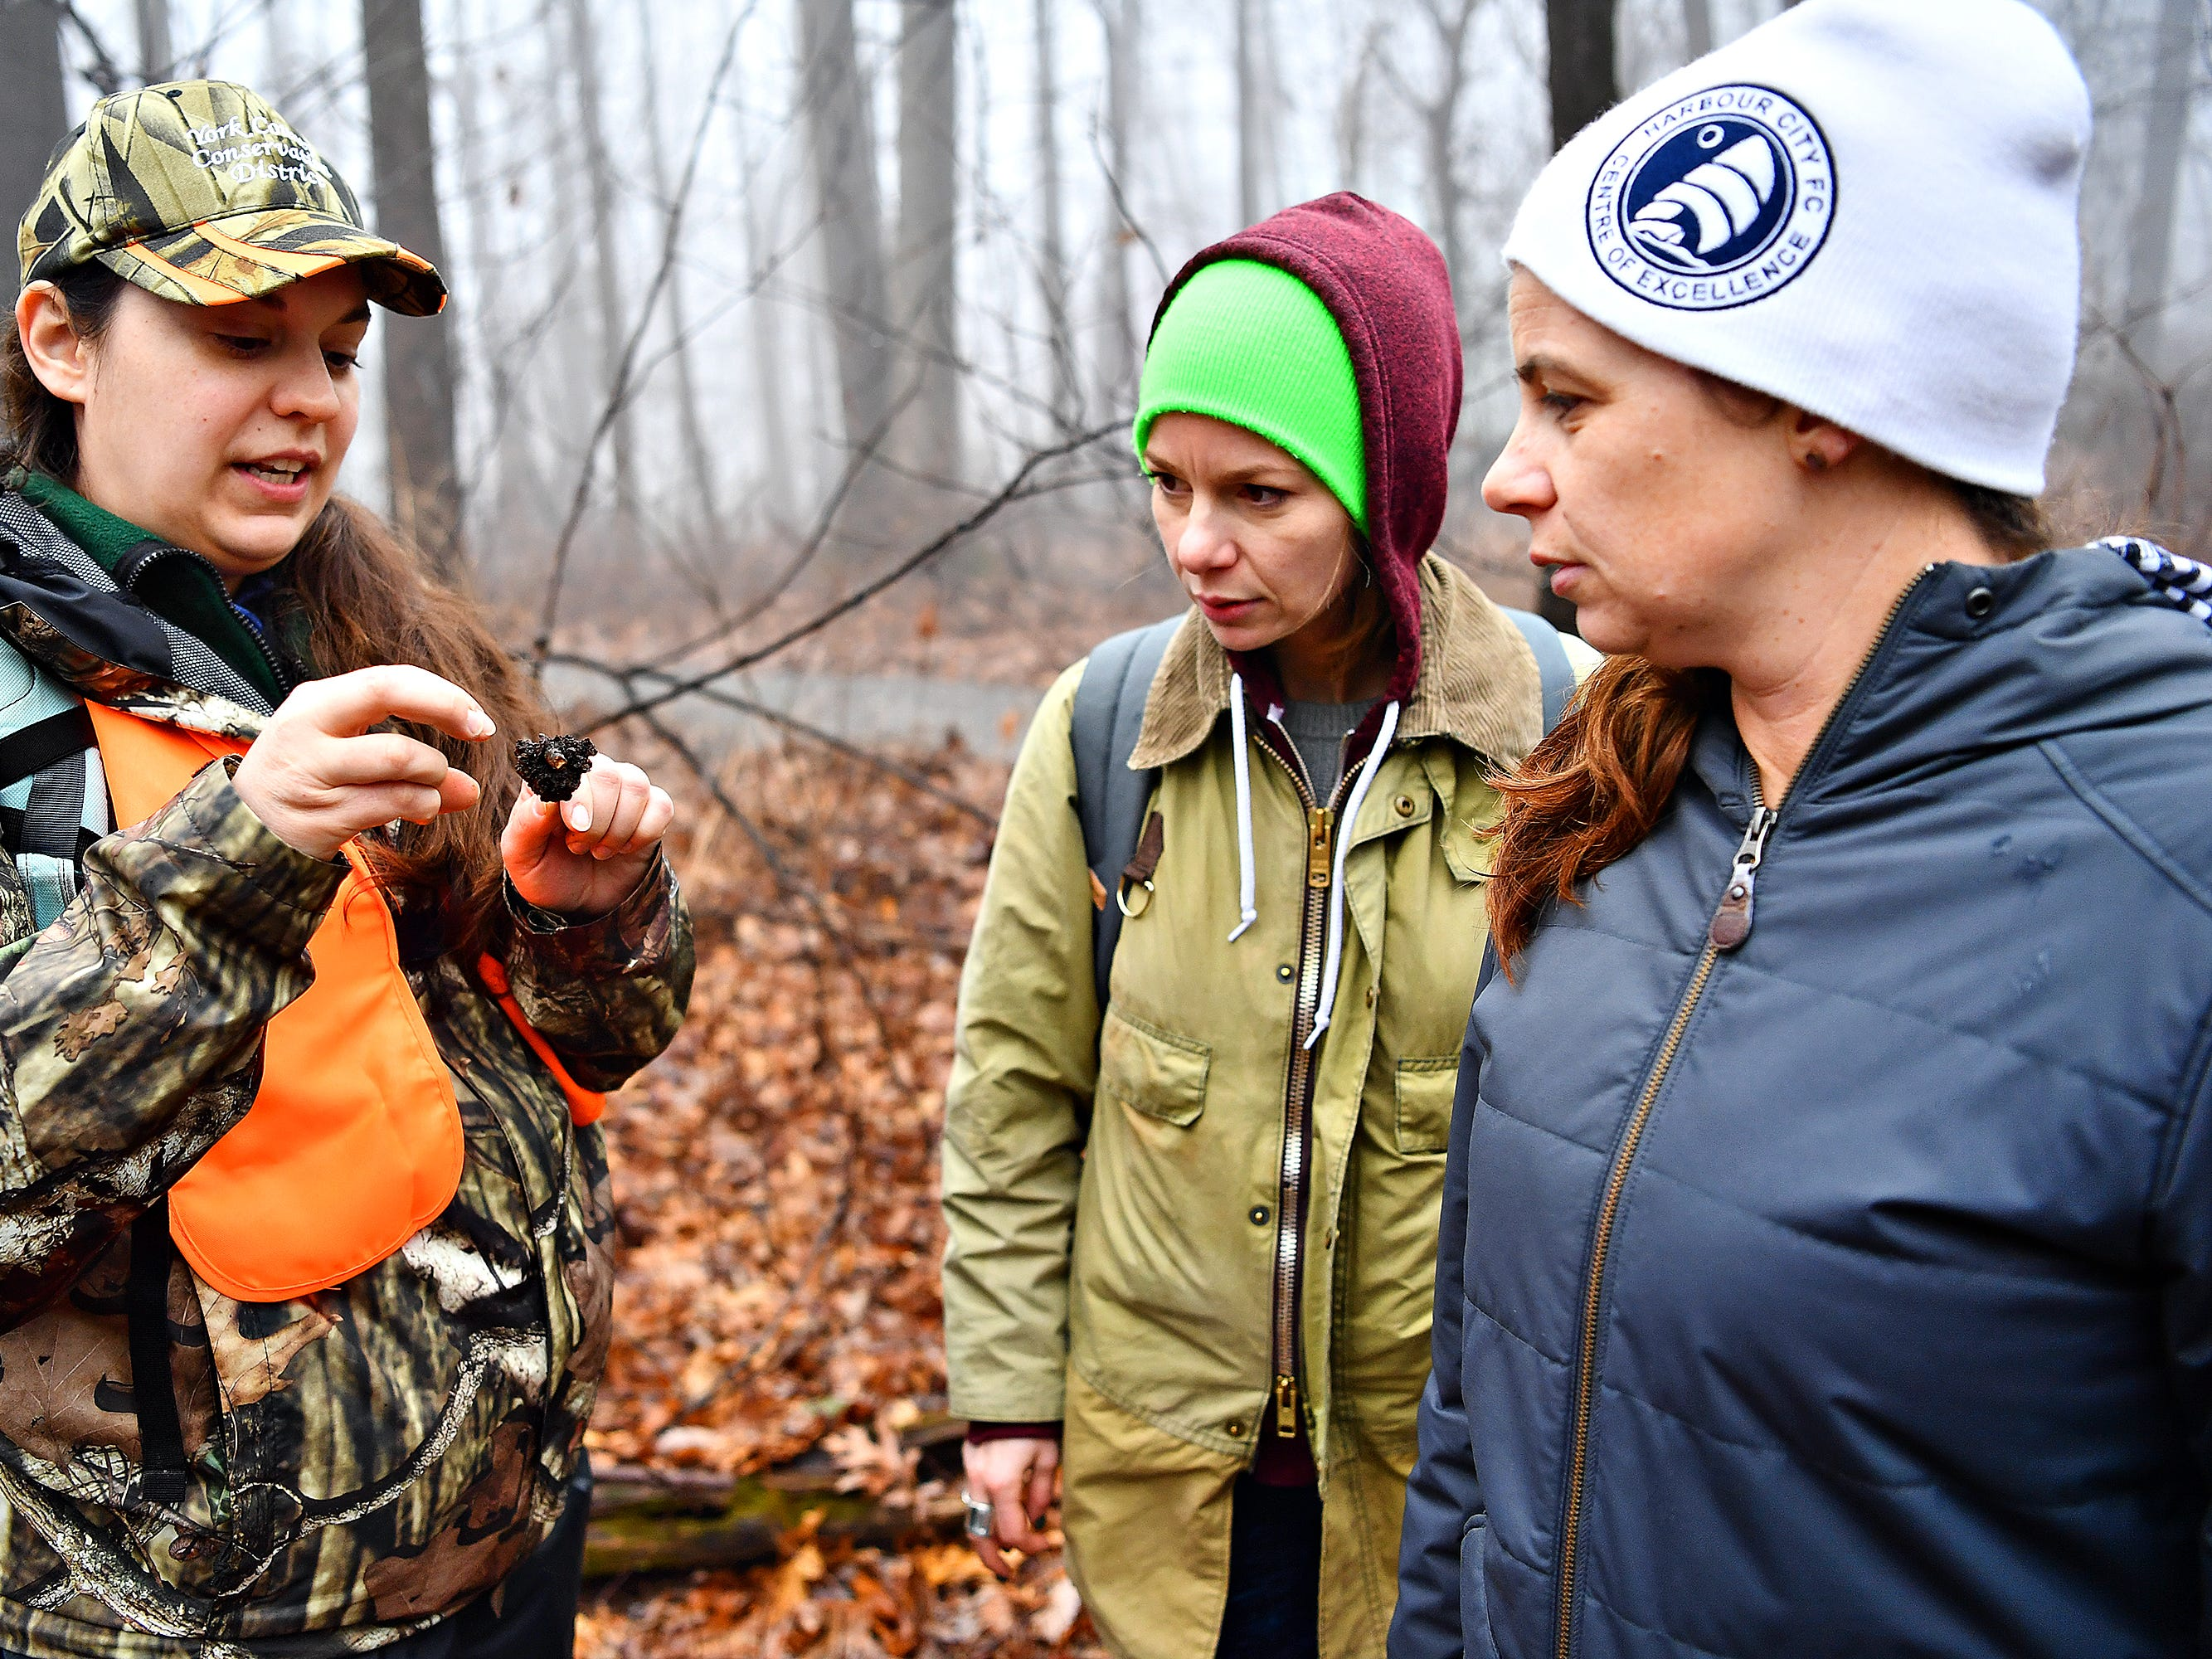 From left, York County Parks Naturalist Kelsey Frey talks about an insect gall while sisters Melanie Butler, of Lancaster, and Tiffany Butler, of Yucatan, Mexico, look on  during a Marshmallow Hike at Rocky Ridge Park in Springettsbury Township, Friday, Dec. 28, 2018. Dawn J. Sagert photo